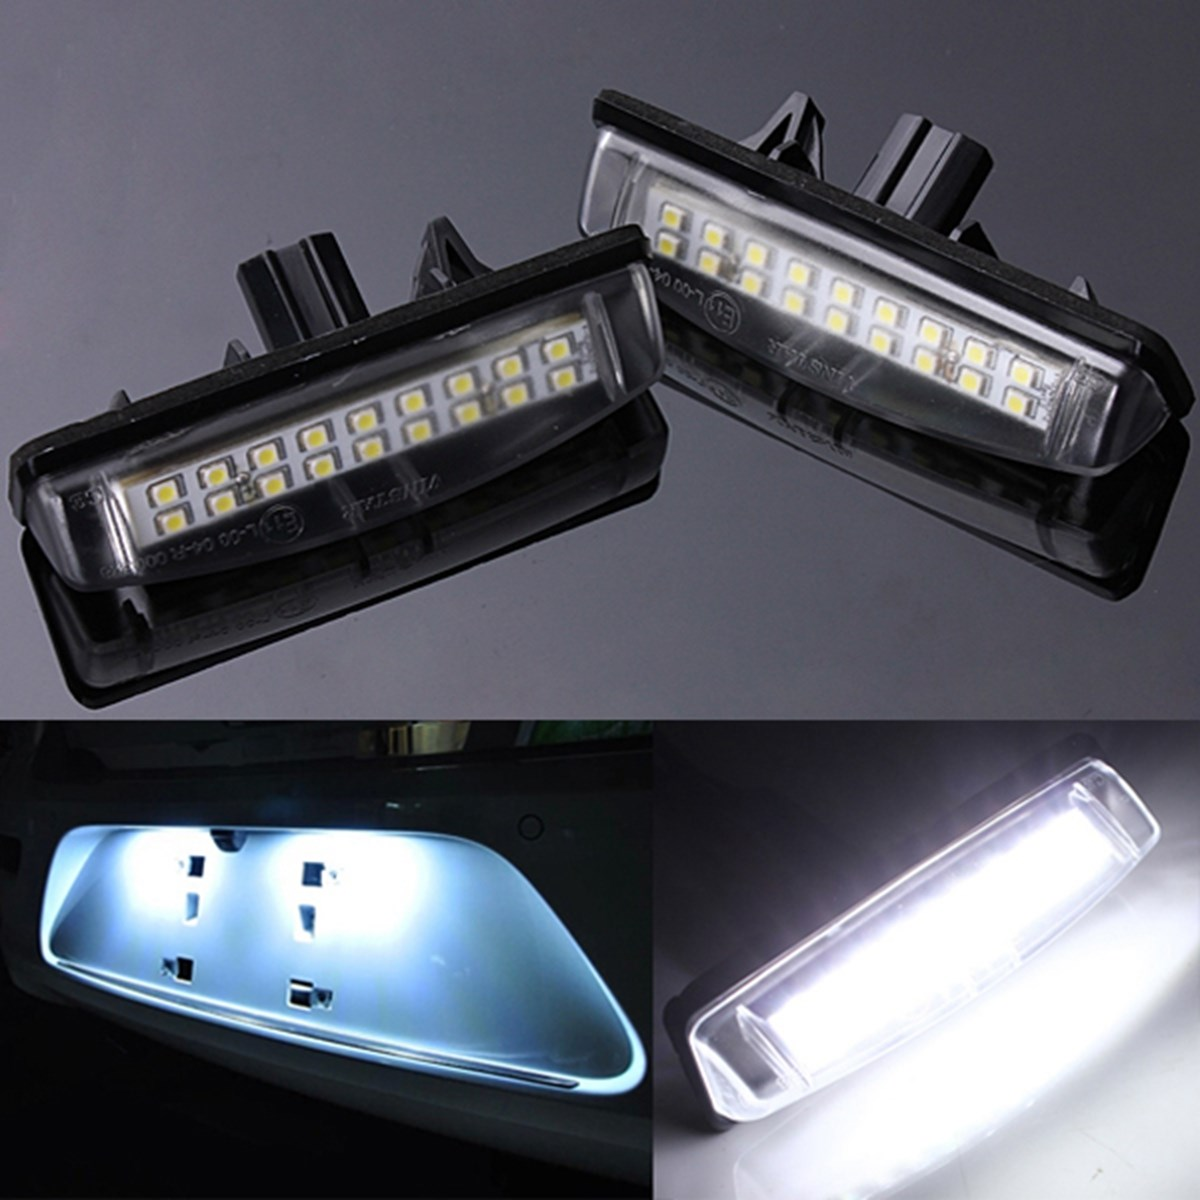 2X White Car LED License Plate Lights 12V Number Plate Lamp No Error fit For Lexus IS200 IS300 GS300 car led license plate lights for mercedes w220 s class 99 05 benz accessories smd3528 led number plate lamp bulb kit 12v